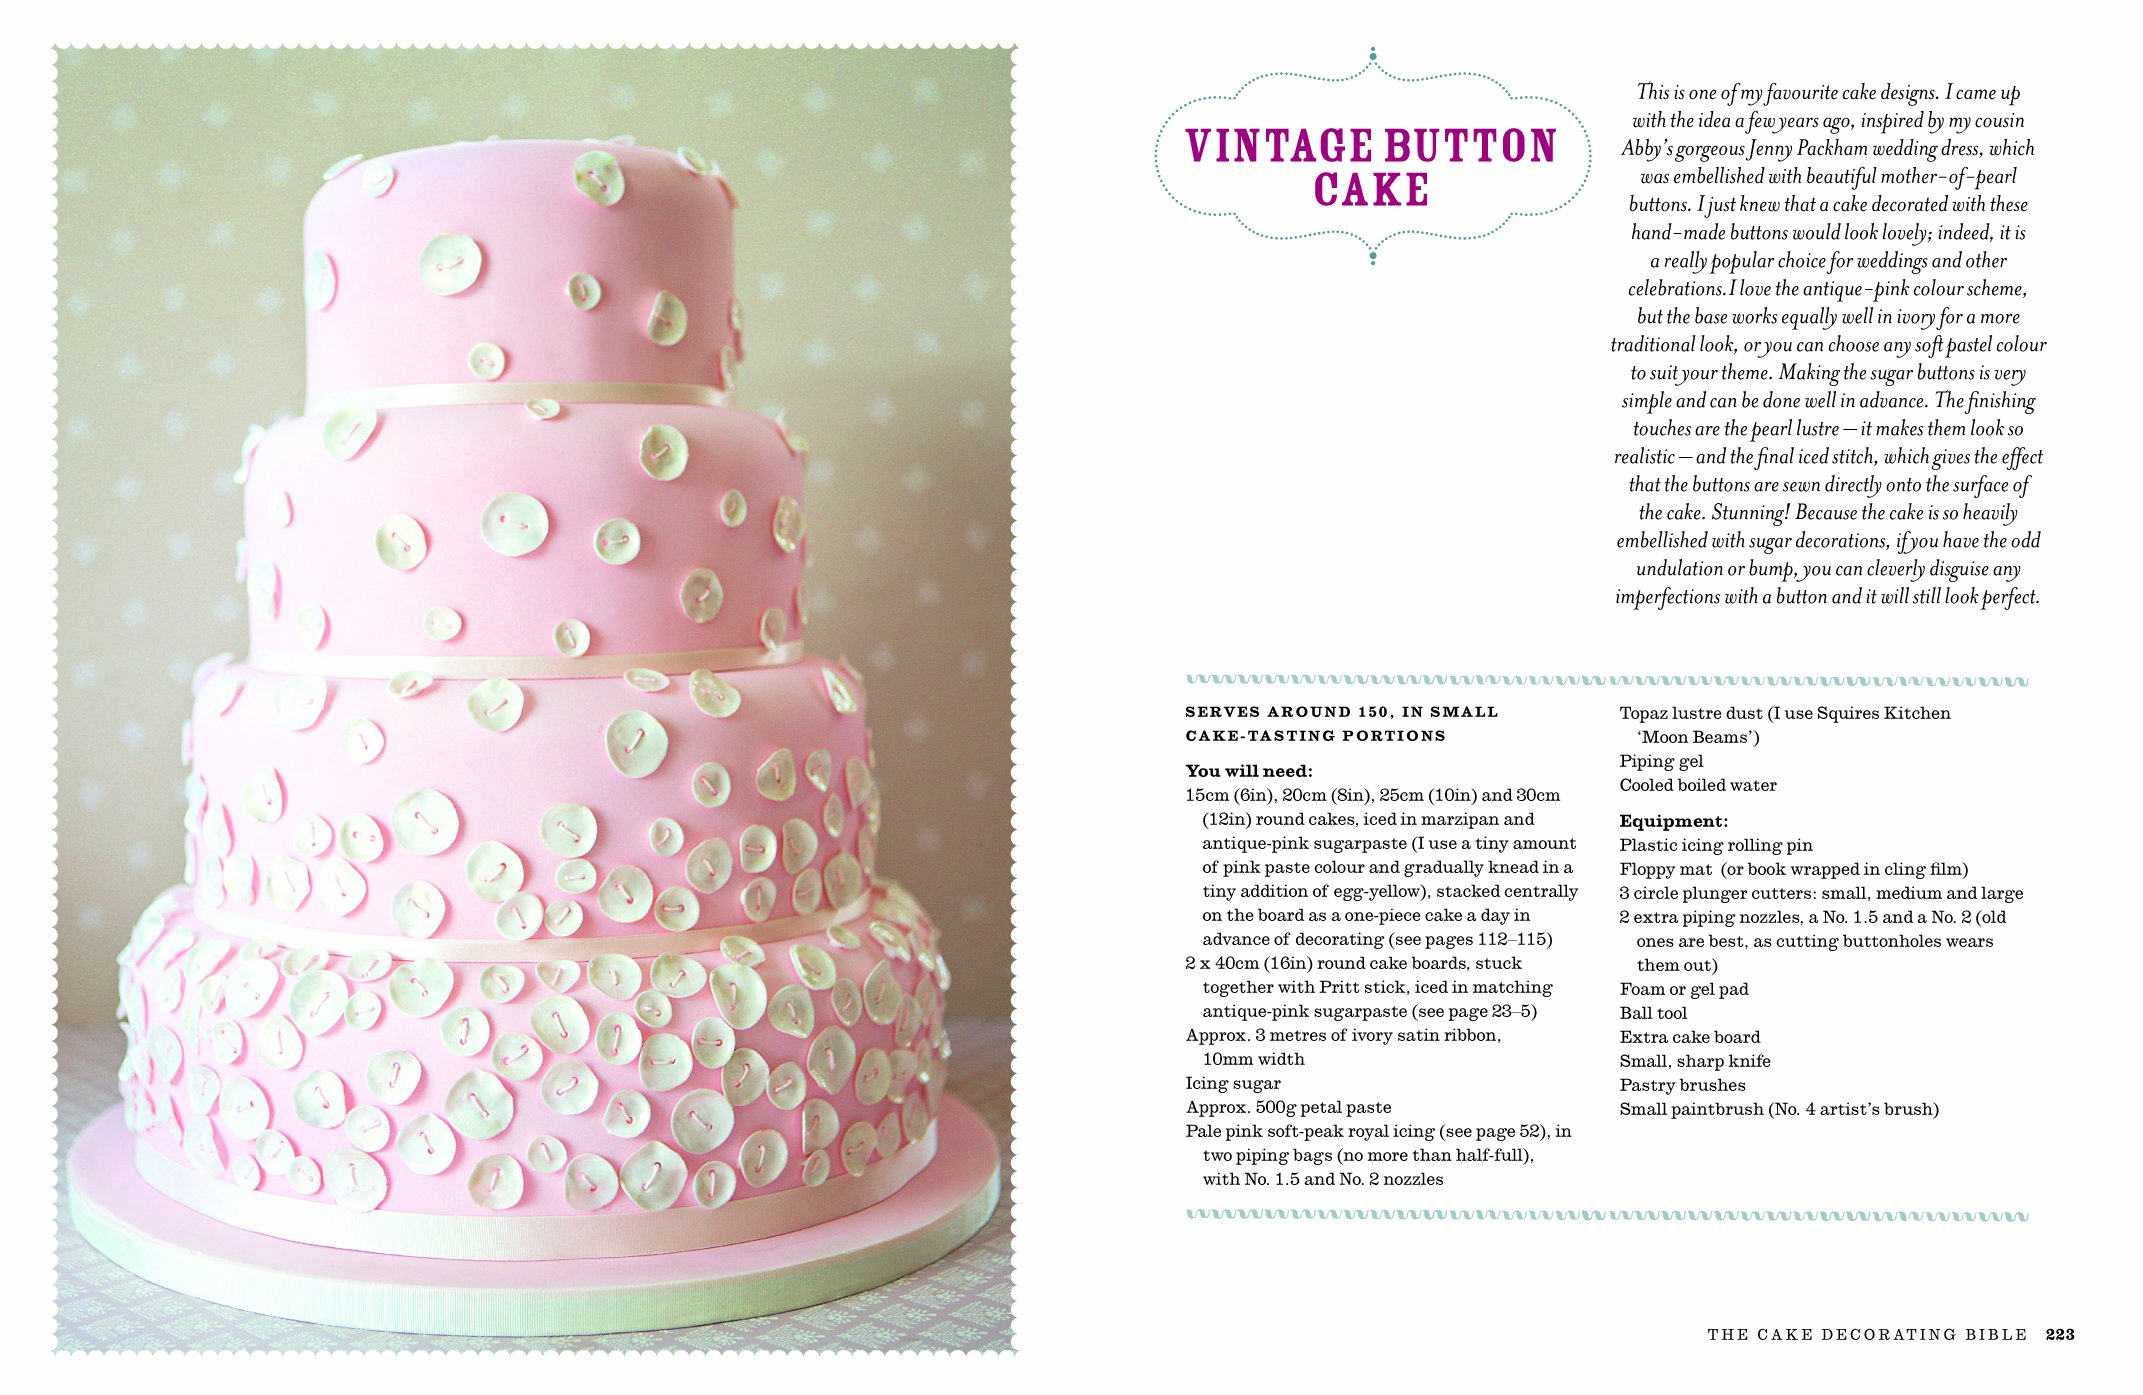 The Cake Decorating Bible Simple Steps To Creating Beautiful Cupcakes Biscuits Birthday Cakes And More Amazoncouk Juliet Sear 8601404346781 Books